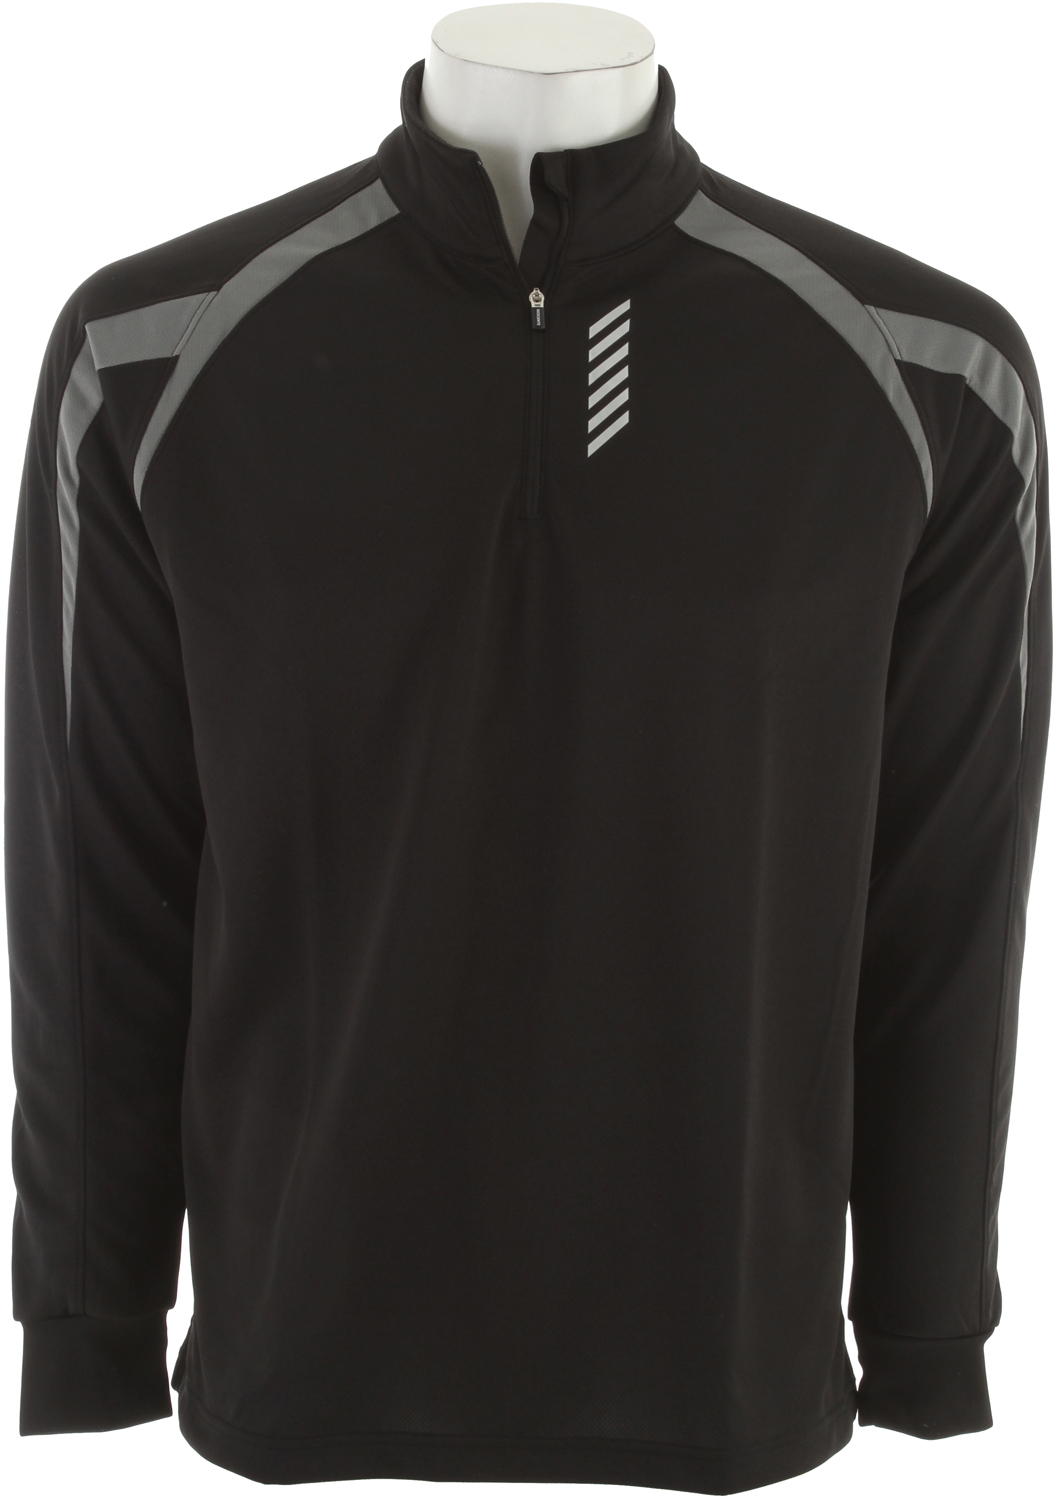 Key Features of the Descente Everest Baselayer Top Black: 1/4 Zip Dry-tech T-Neck Dry tech - $62.00